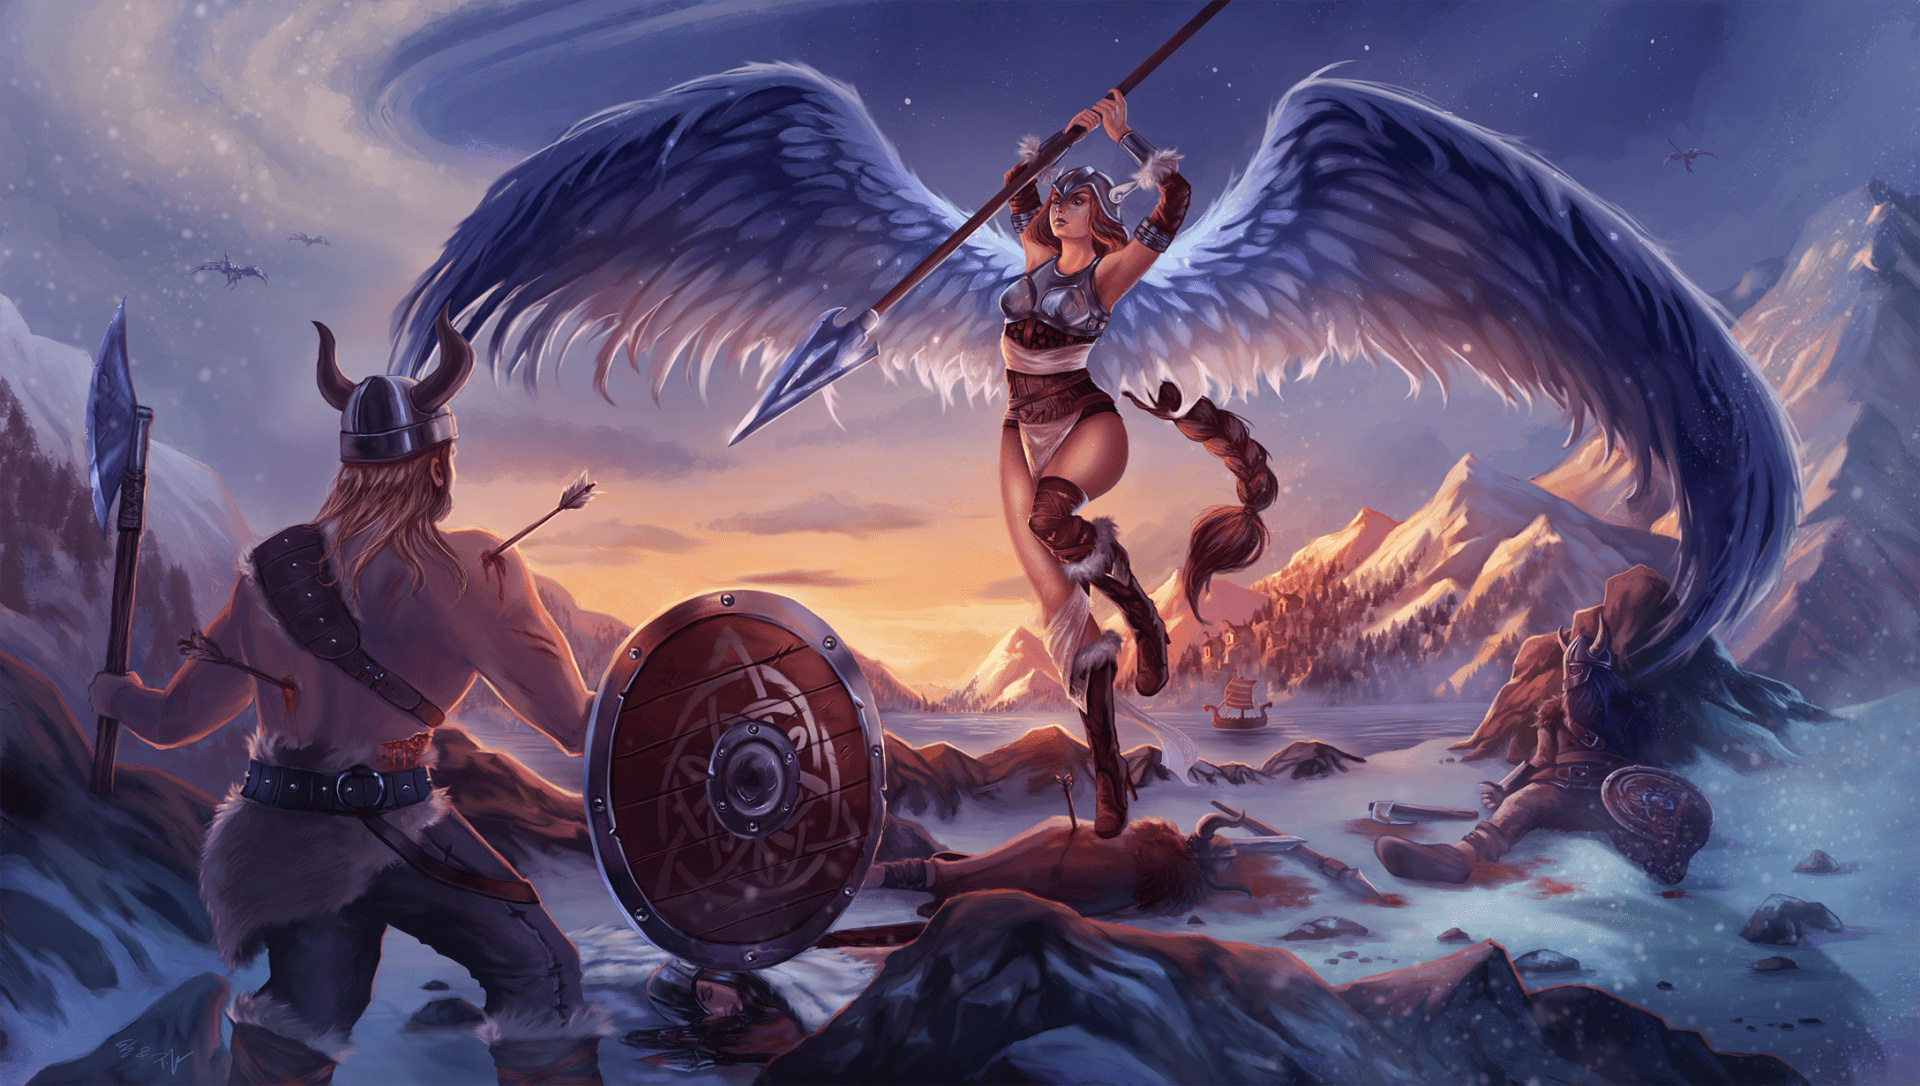 Iphone 7 Plus Hd Wallpapers Reddit Valkyrie Hd Wallpaper Background Image 2176x1231 Id